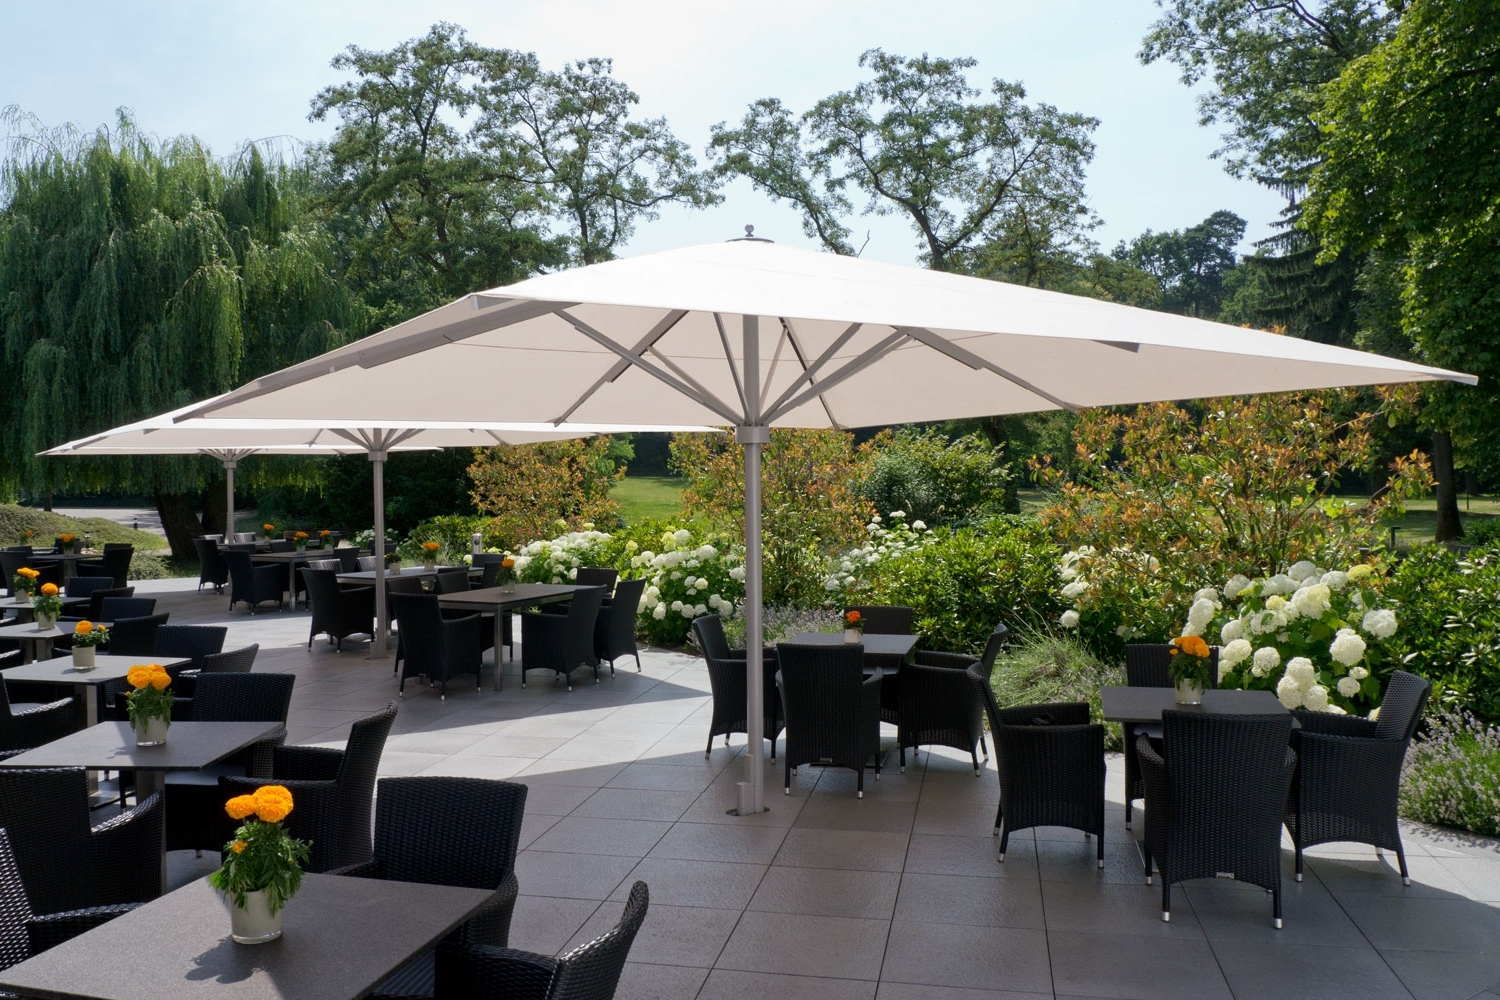 Caravita – Exclusive Commercial Patio Umbrellas In Most Up To Date Commercial Patio Umbrellas (View 1 of 20)